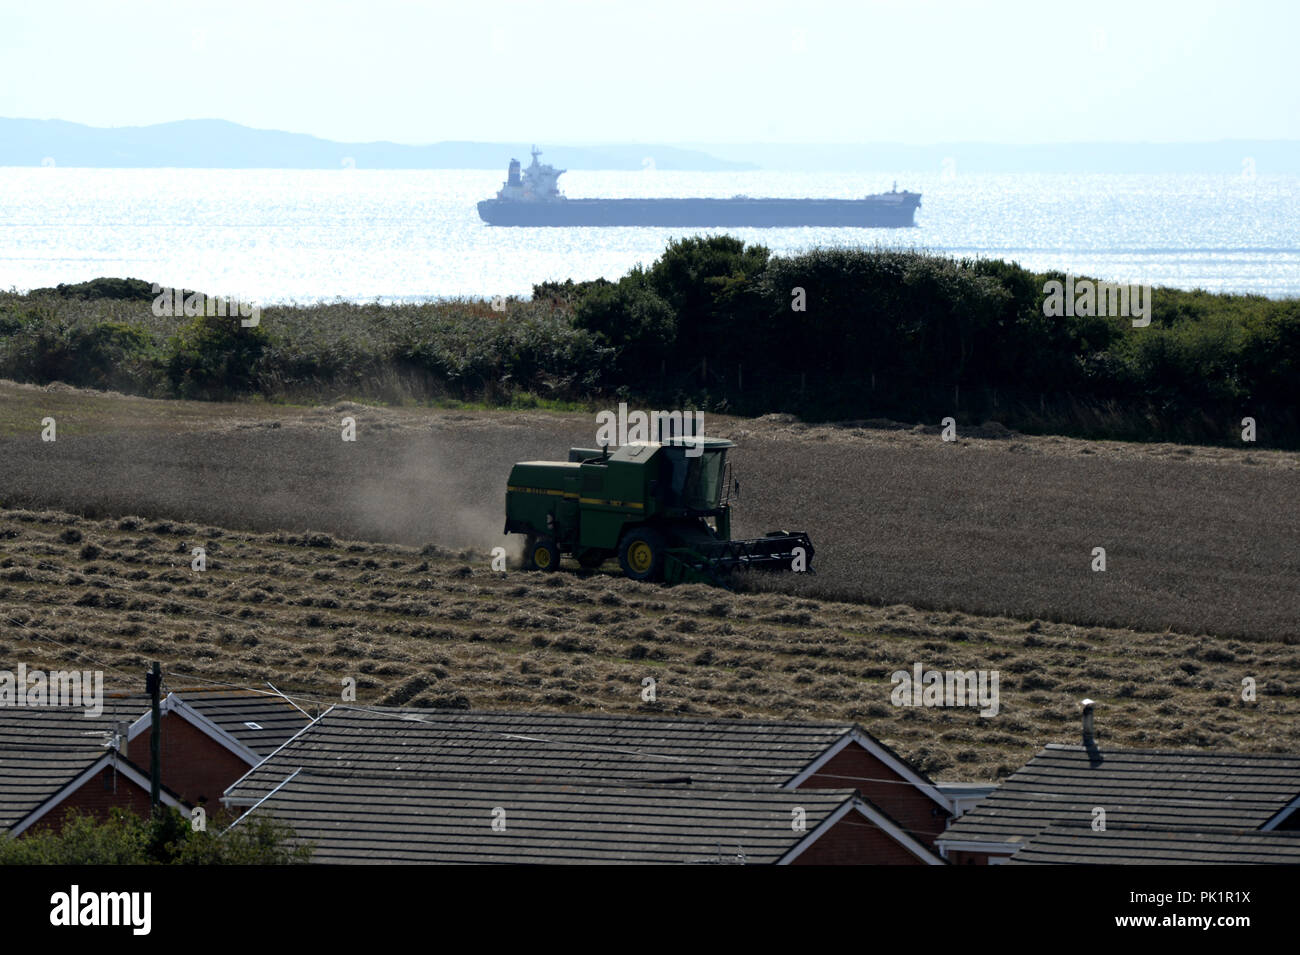 combine harvester works a field of wheat while a ship passes by in the distance on a sparkling sea - Stock Image